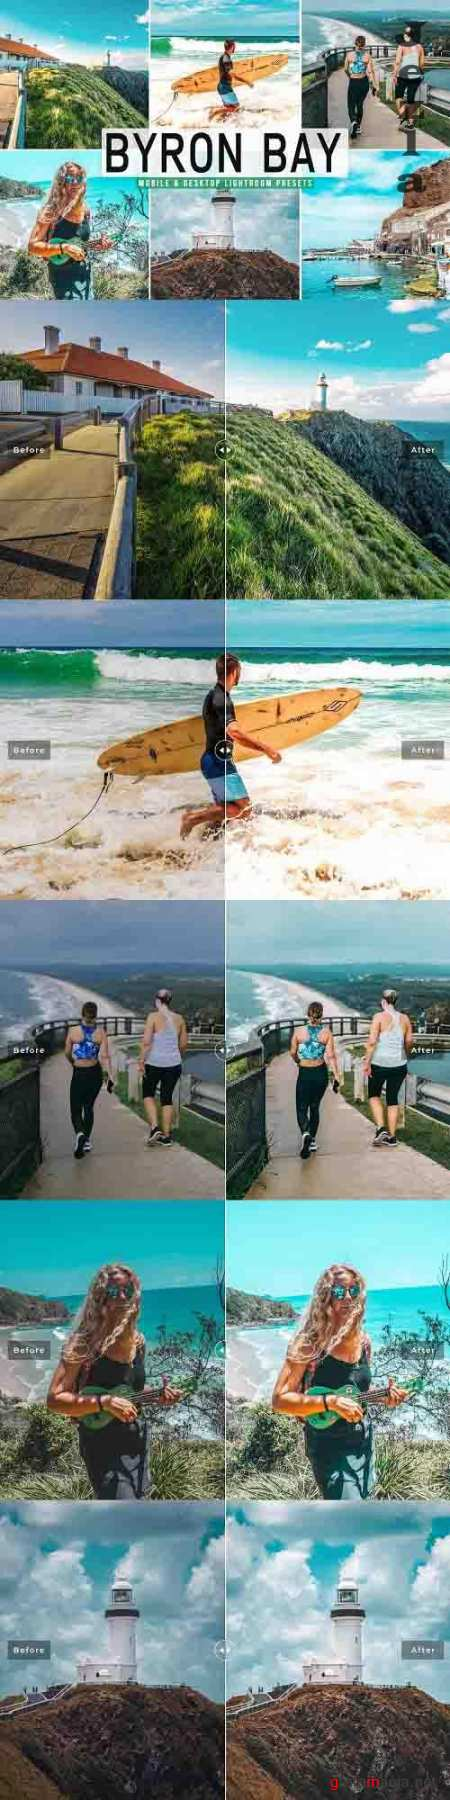 Byron Bay Pro Lightroom Presets - 5928745